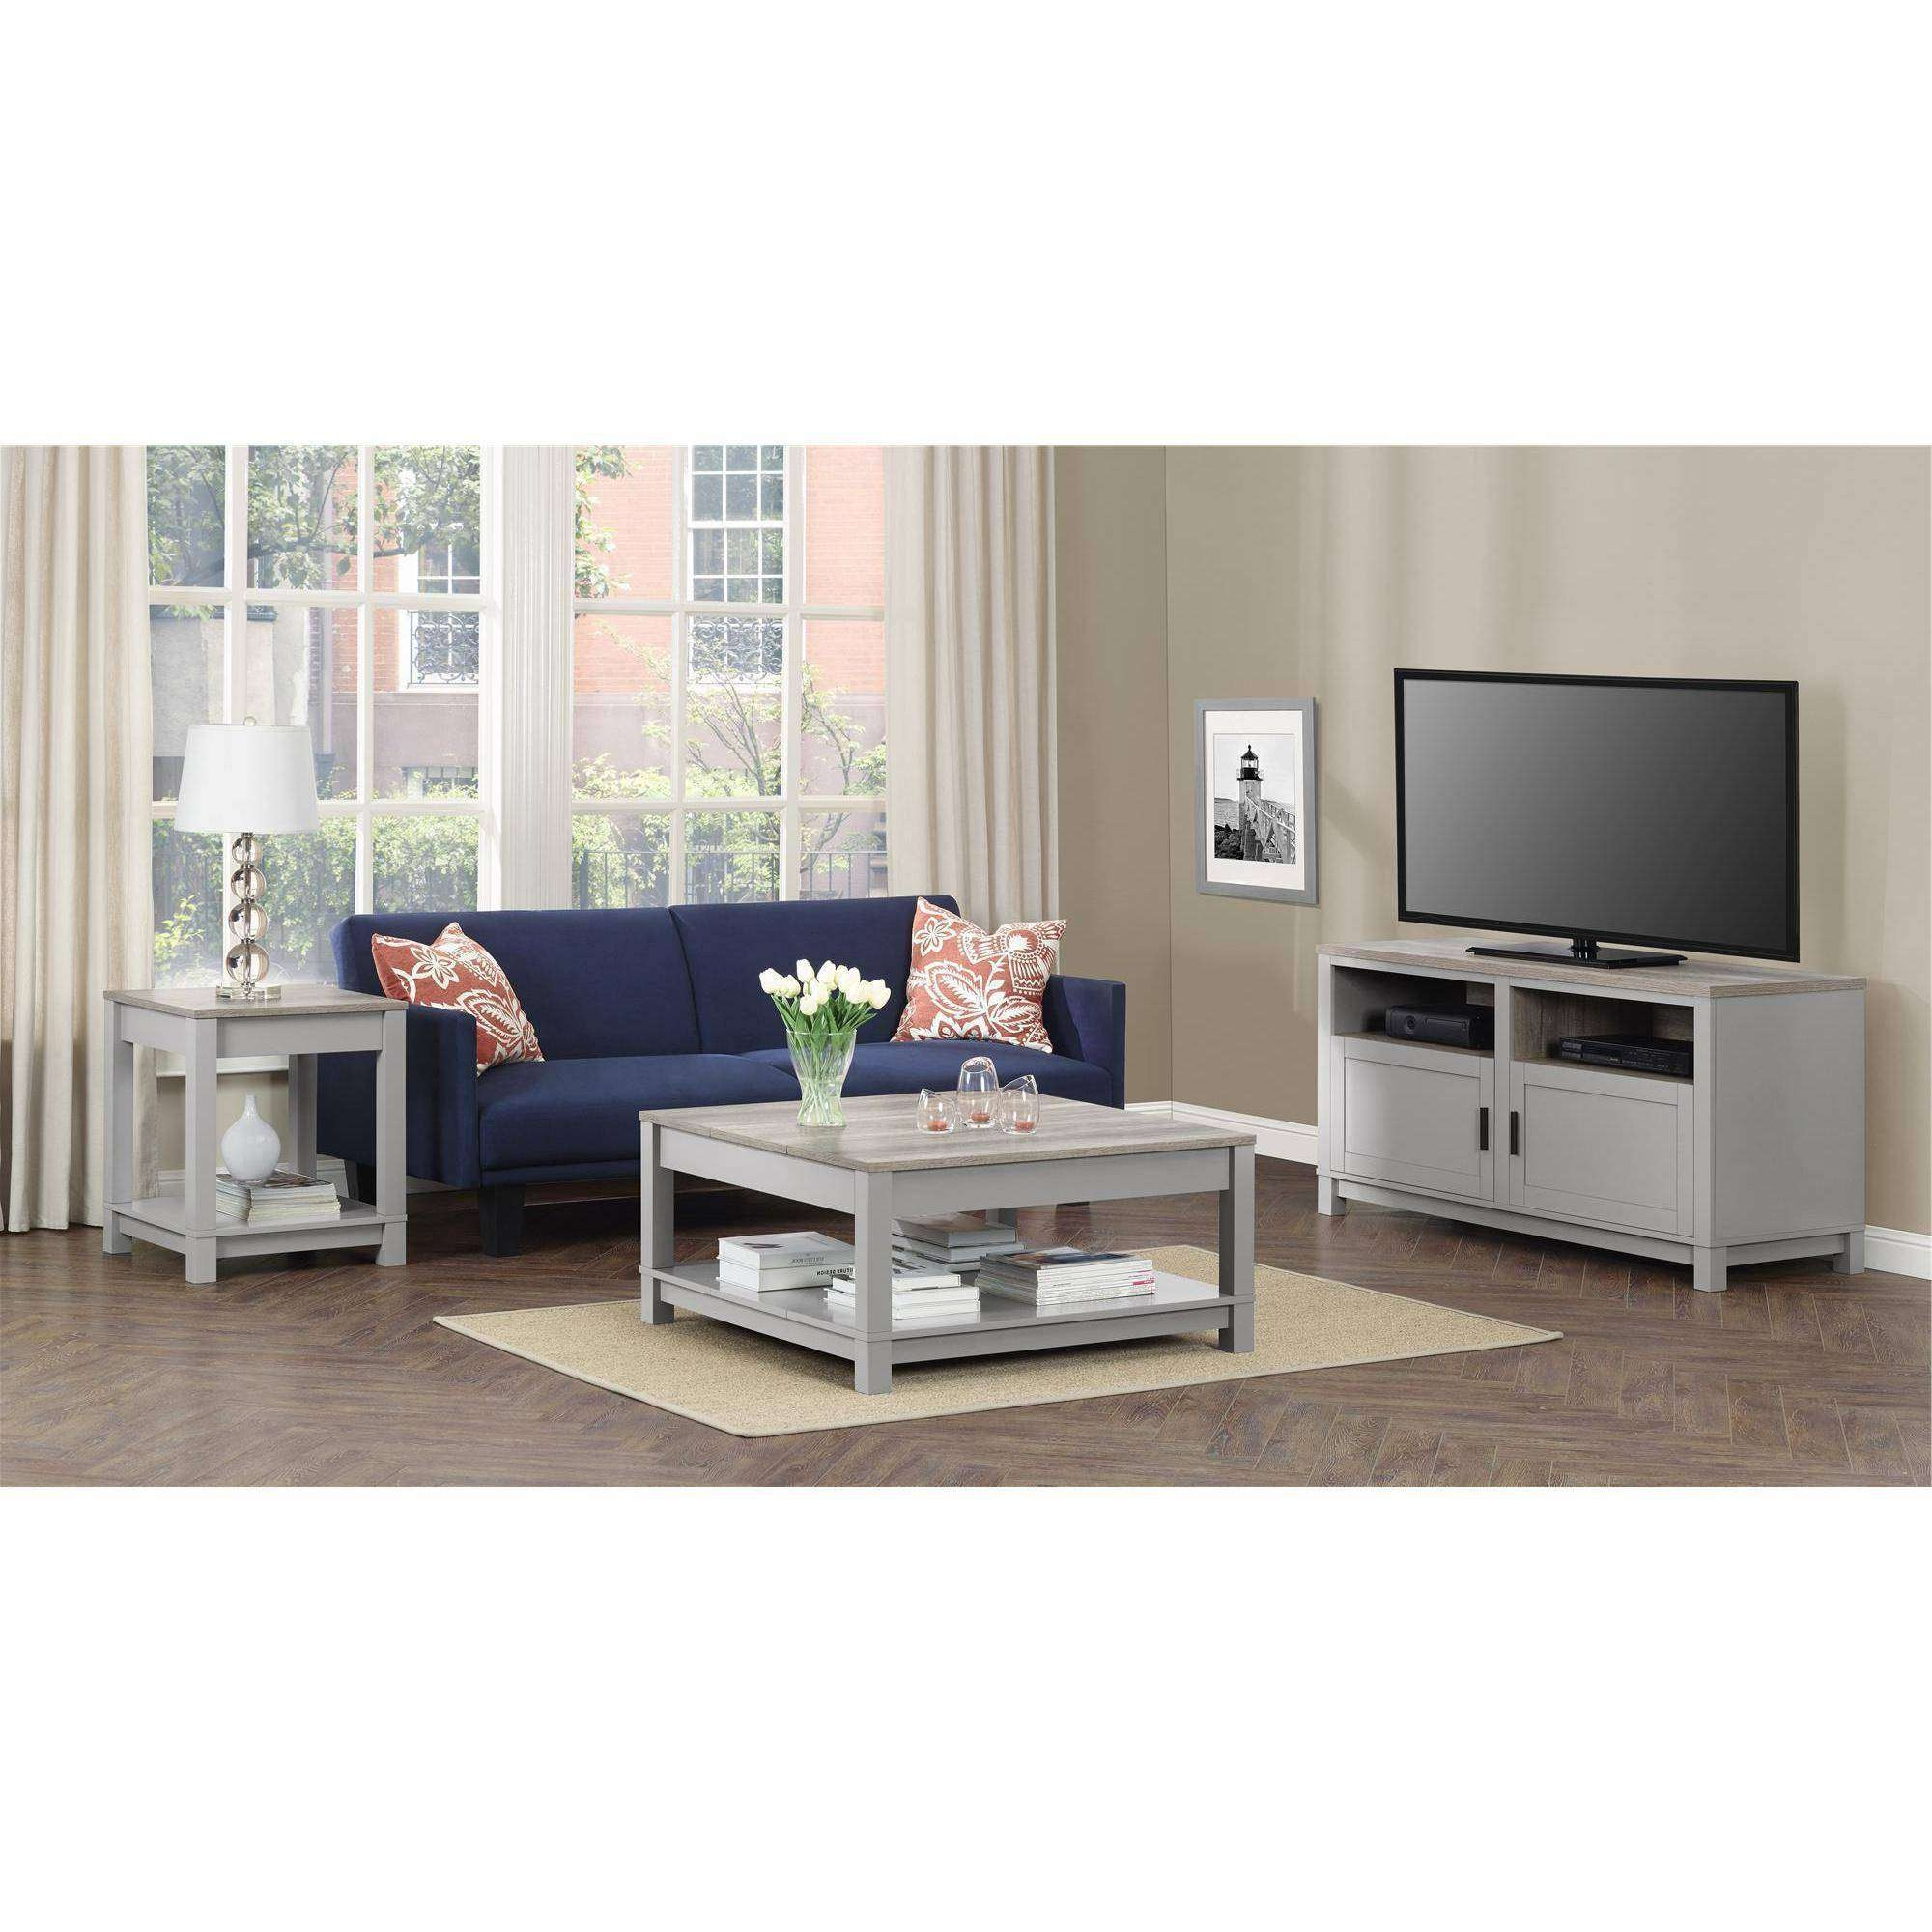 Best And Newest Tv Unit And Coffee Table Sets Pertaining To Coffee Tables : Cheap Coffee Table Sets And End Set Tv Unit Living (View 3 of 20)